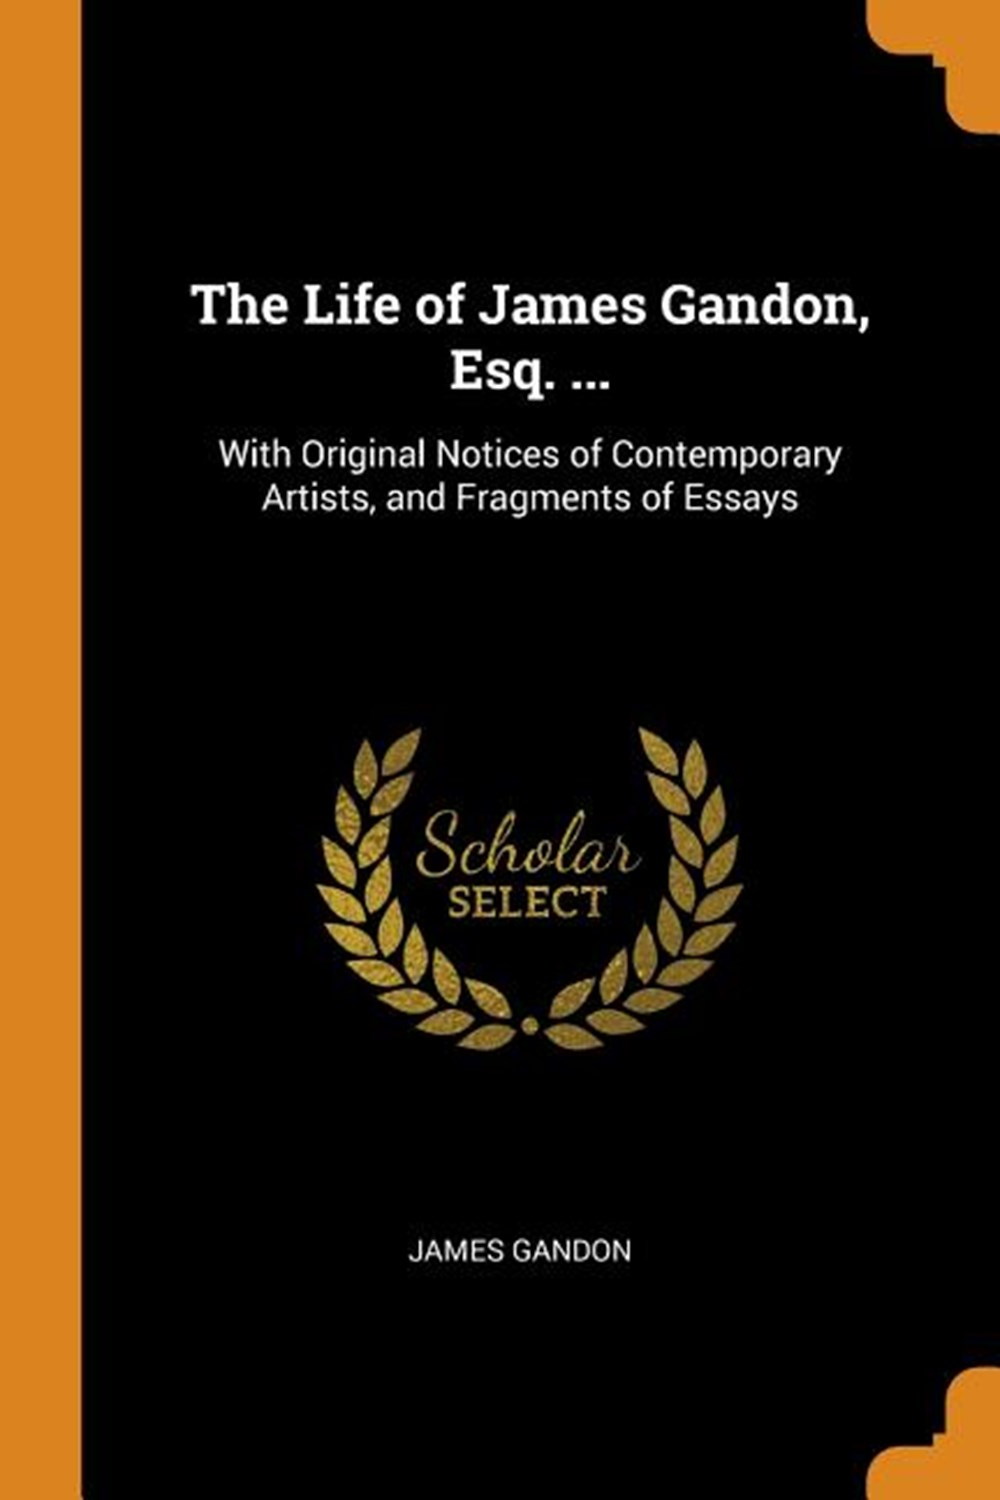 Life of James Gandon, Esq. ... With Original Notices of Contemporary Artists, and Fragments of Essay